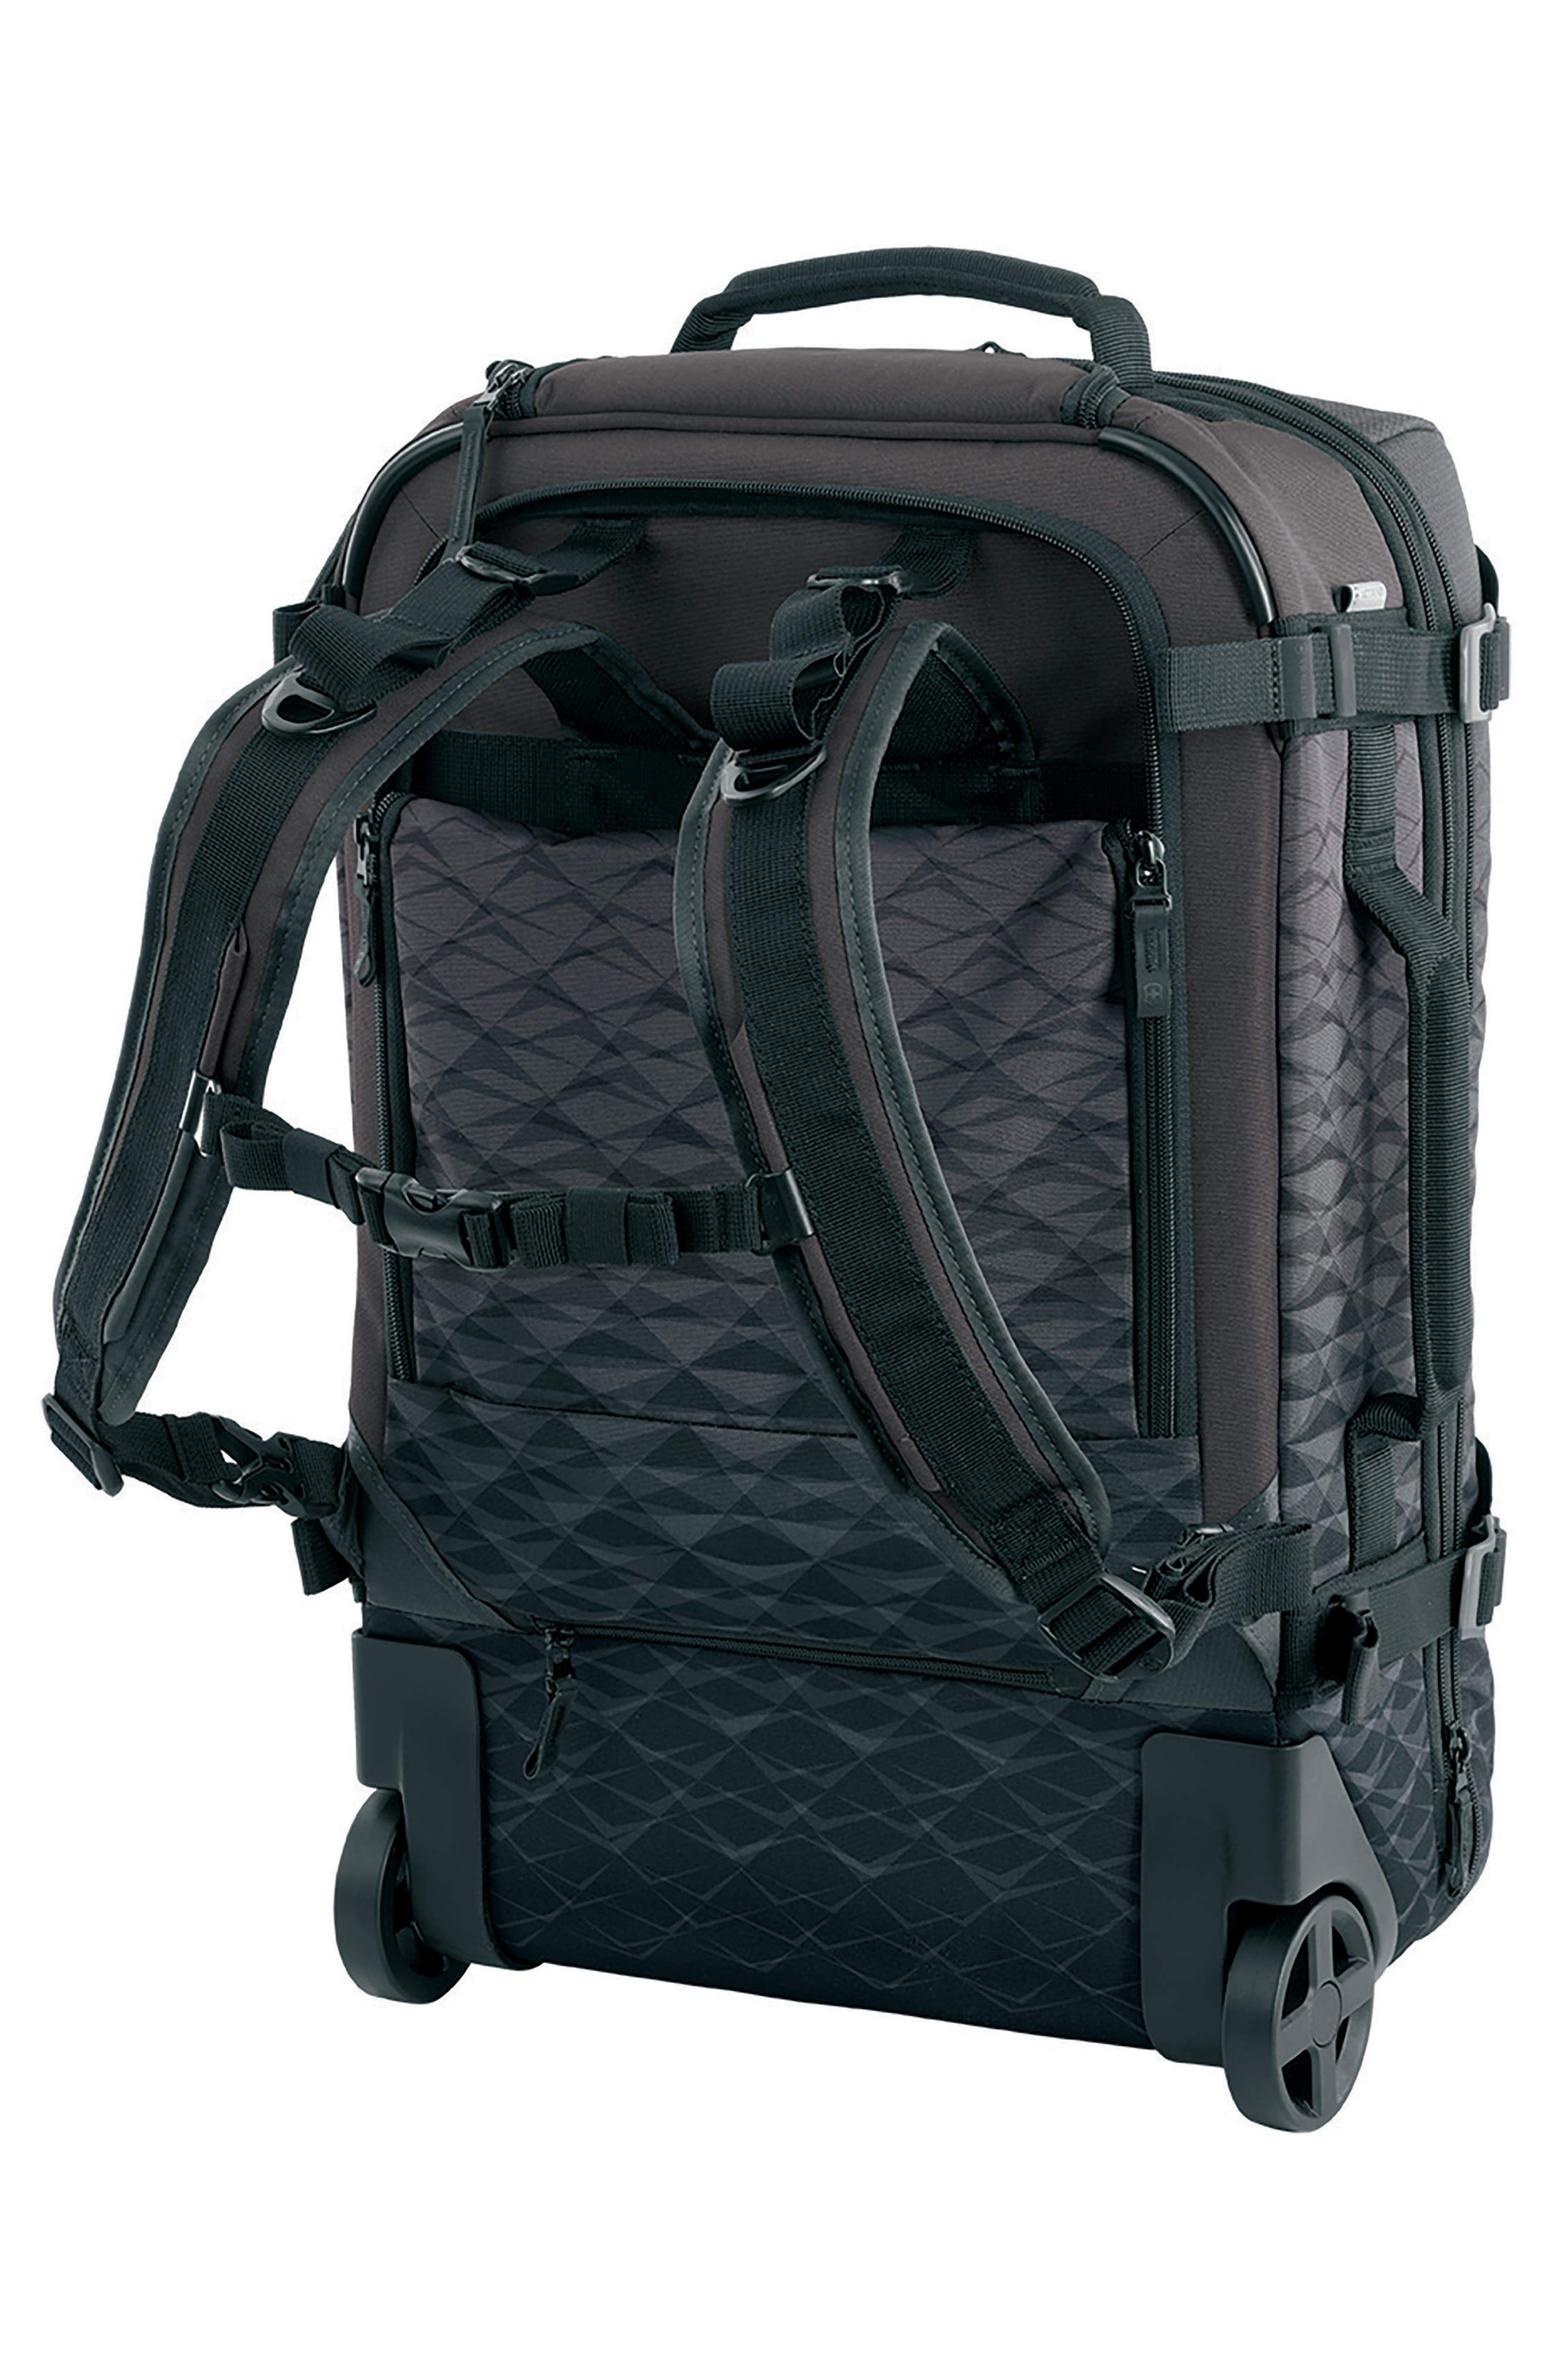 VX Touring 23-Inch Convertible Carry-On,                             Alternate thumbnail 3, color,                             002